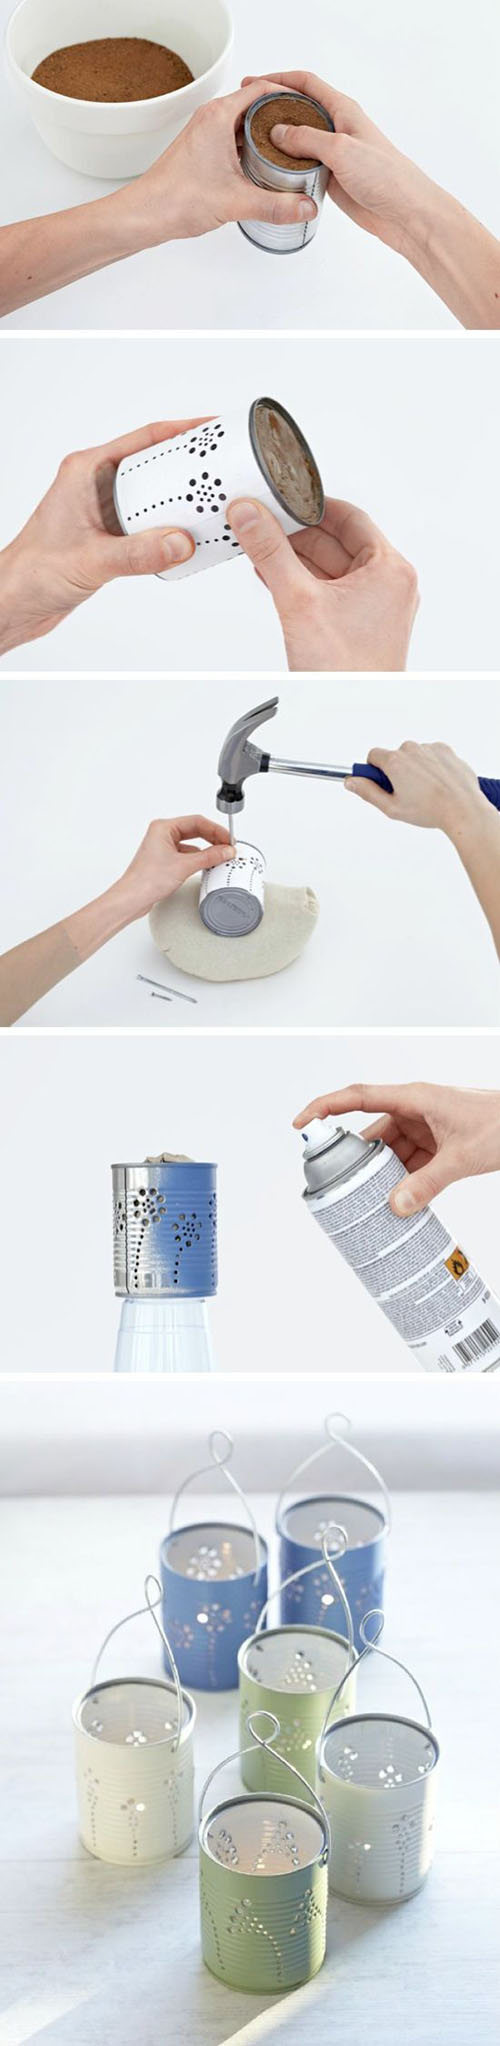 19  DIY Tin Can Lanterns1c8c30